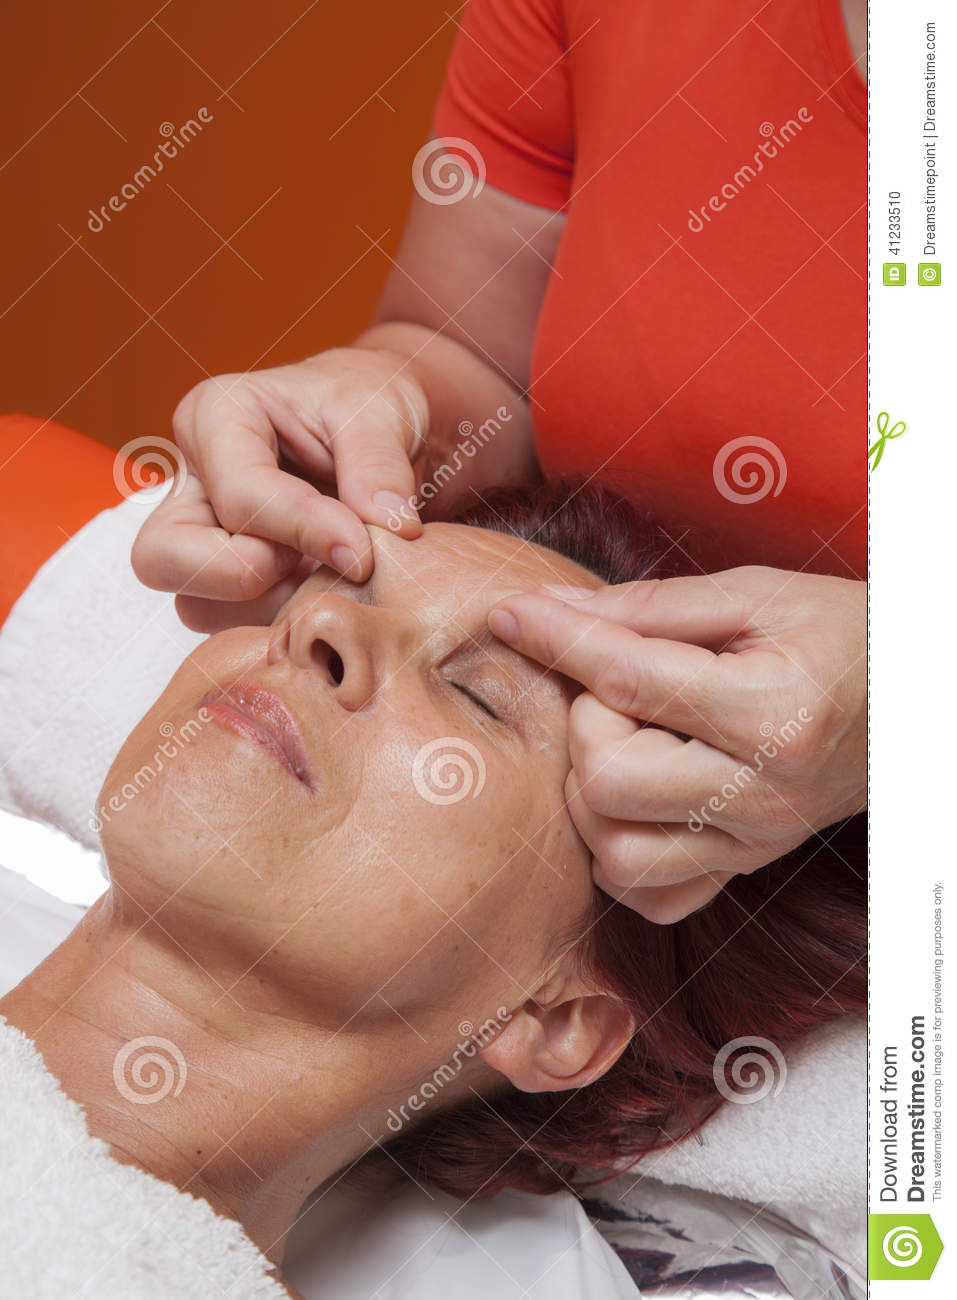 Massage Pro Gets Facial